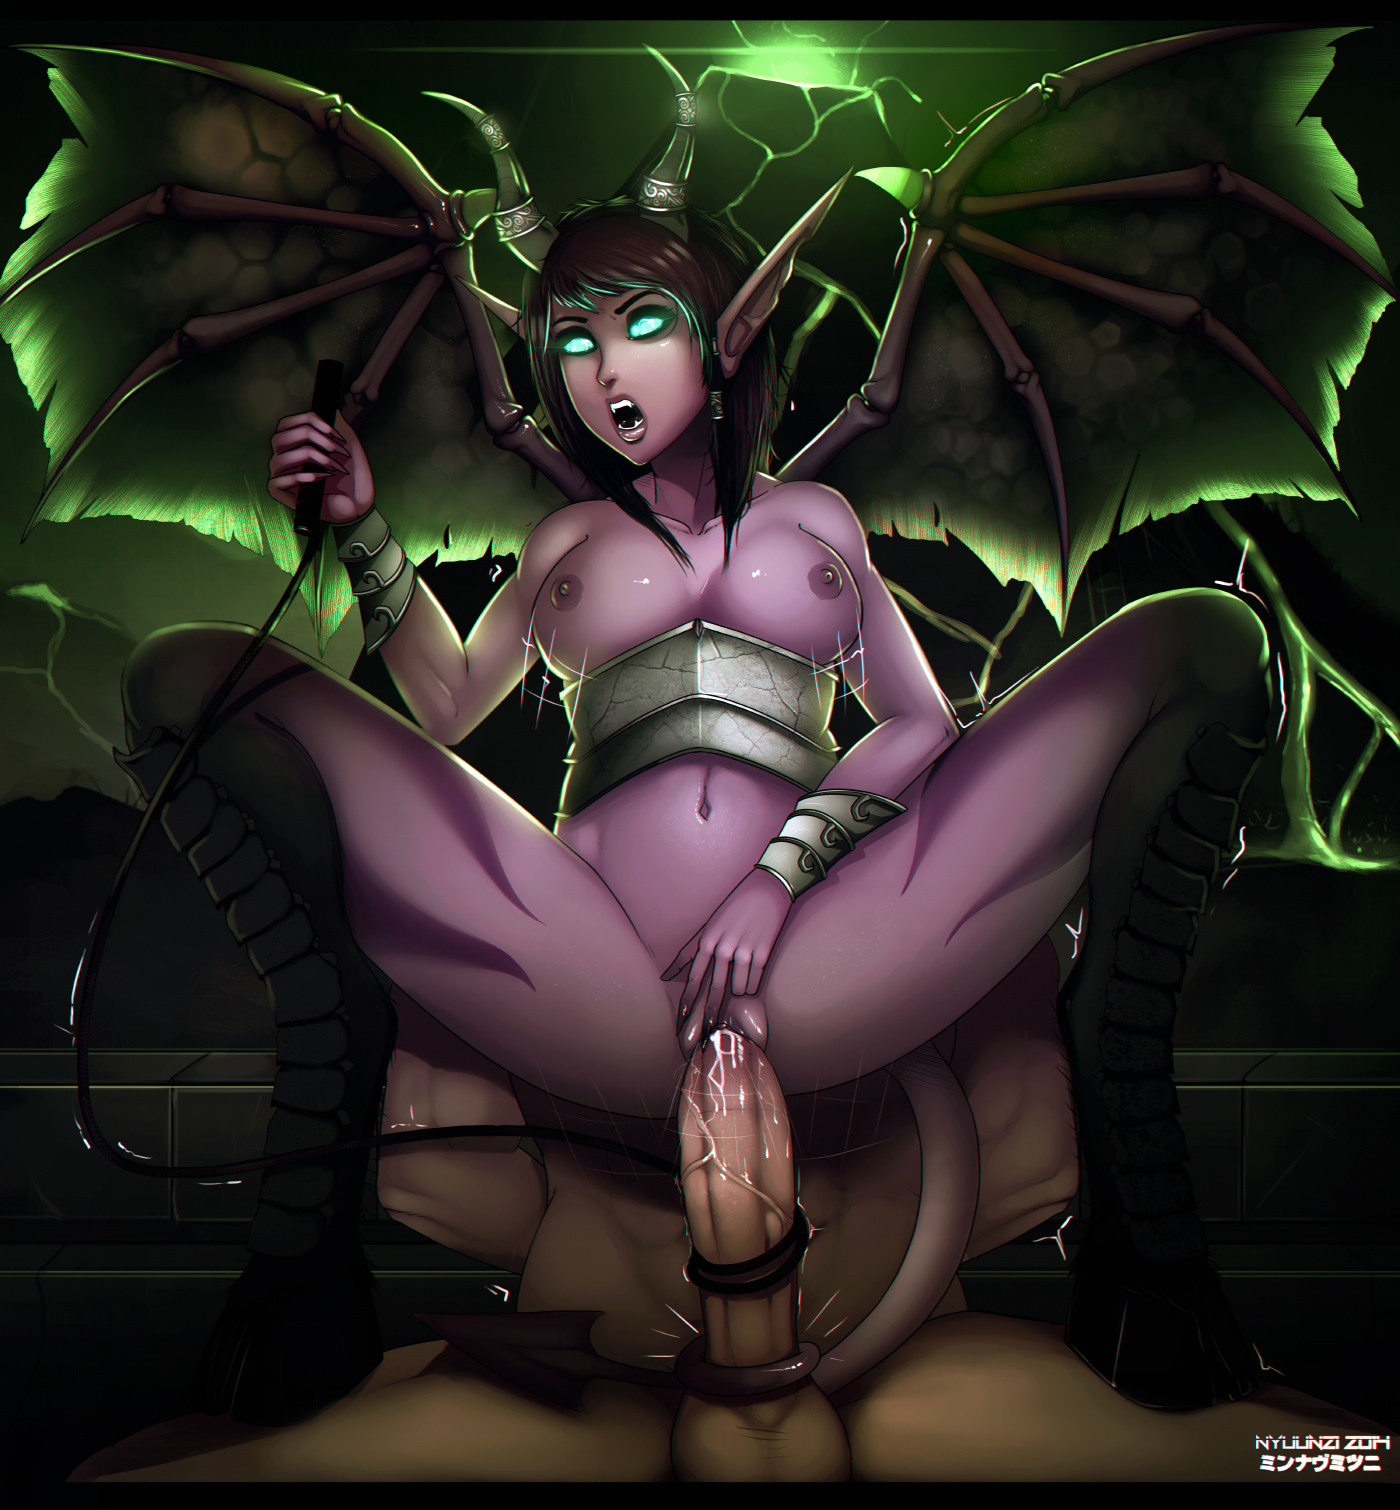 World of warcraft succubus hentai pic nude scenes